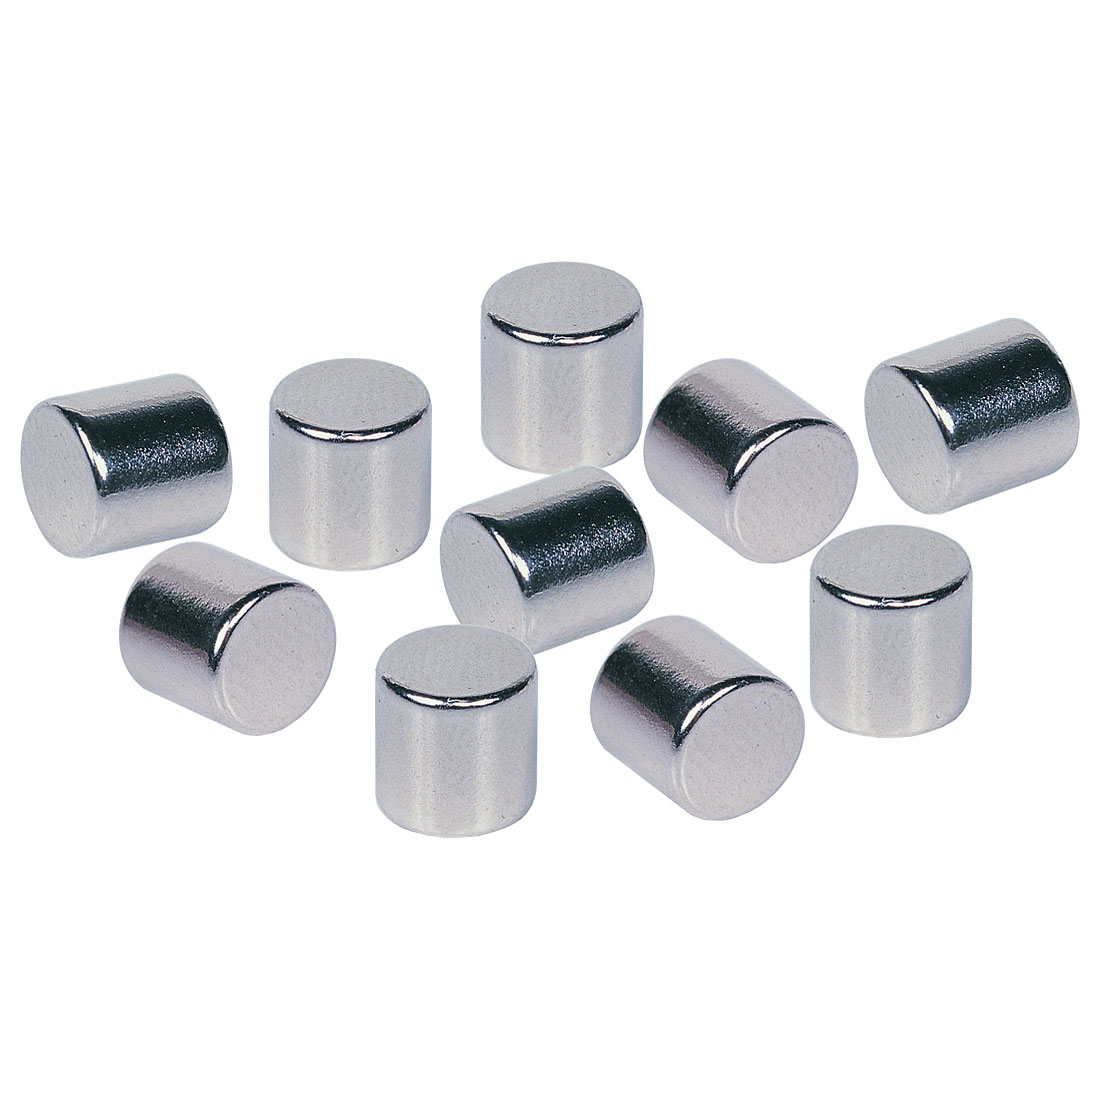 neodymium super magnets w25042. Black Bedroom Furniture Sets. Home Design Ideas